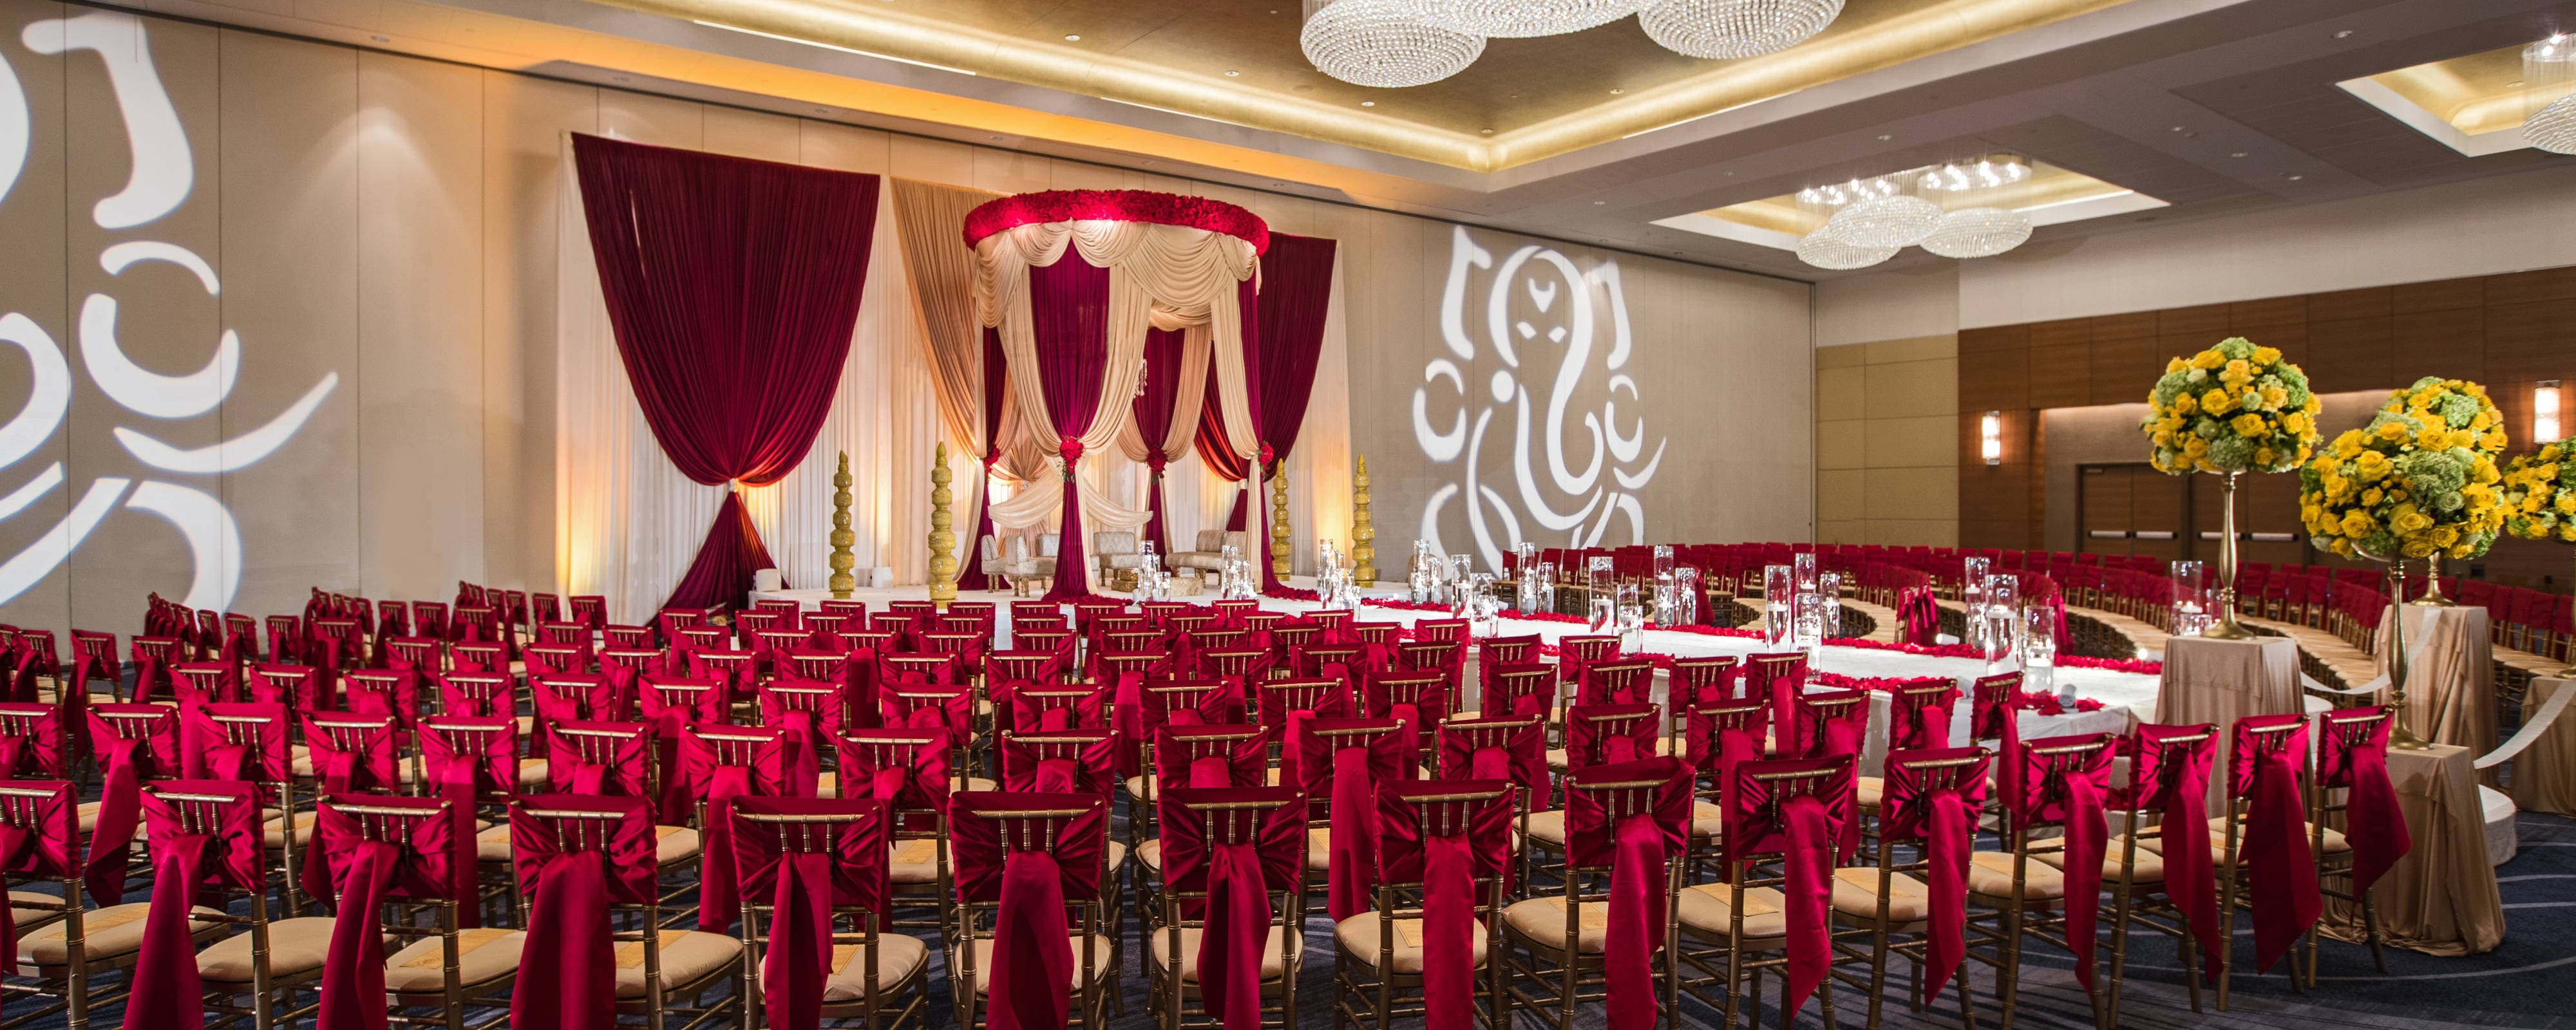 Wedding Venues In Schaumburg Il Renaissance Schaumburg Convention Center